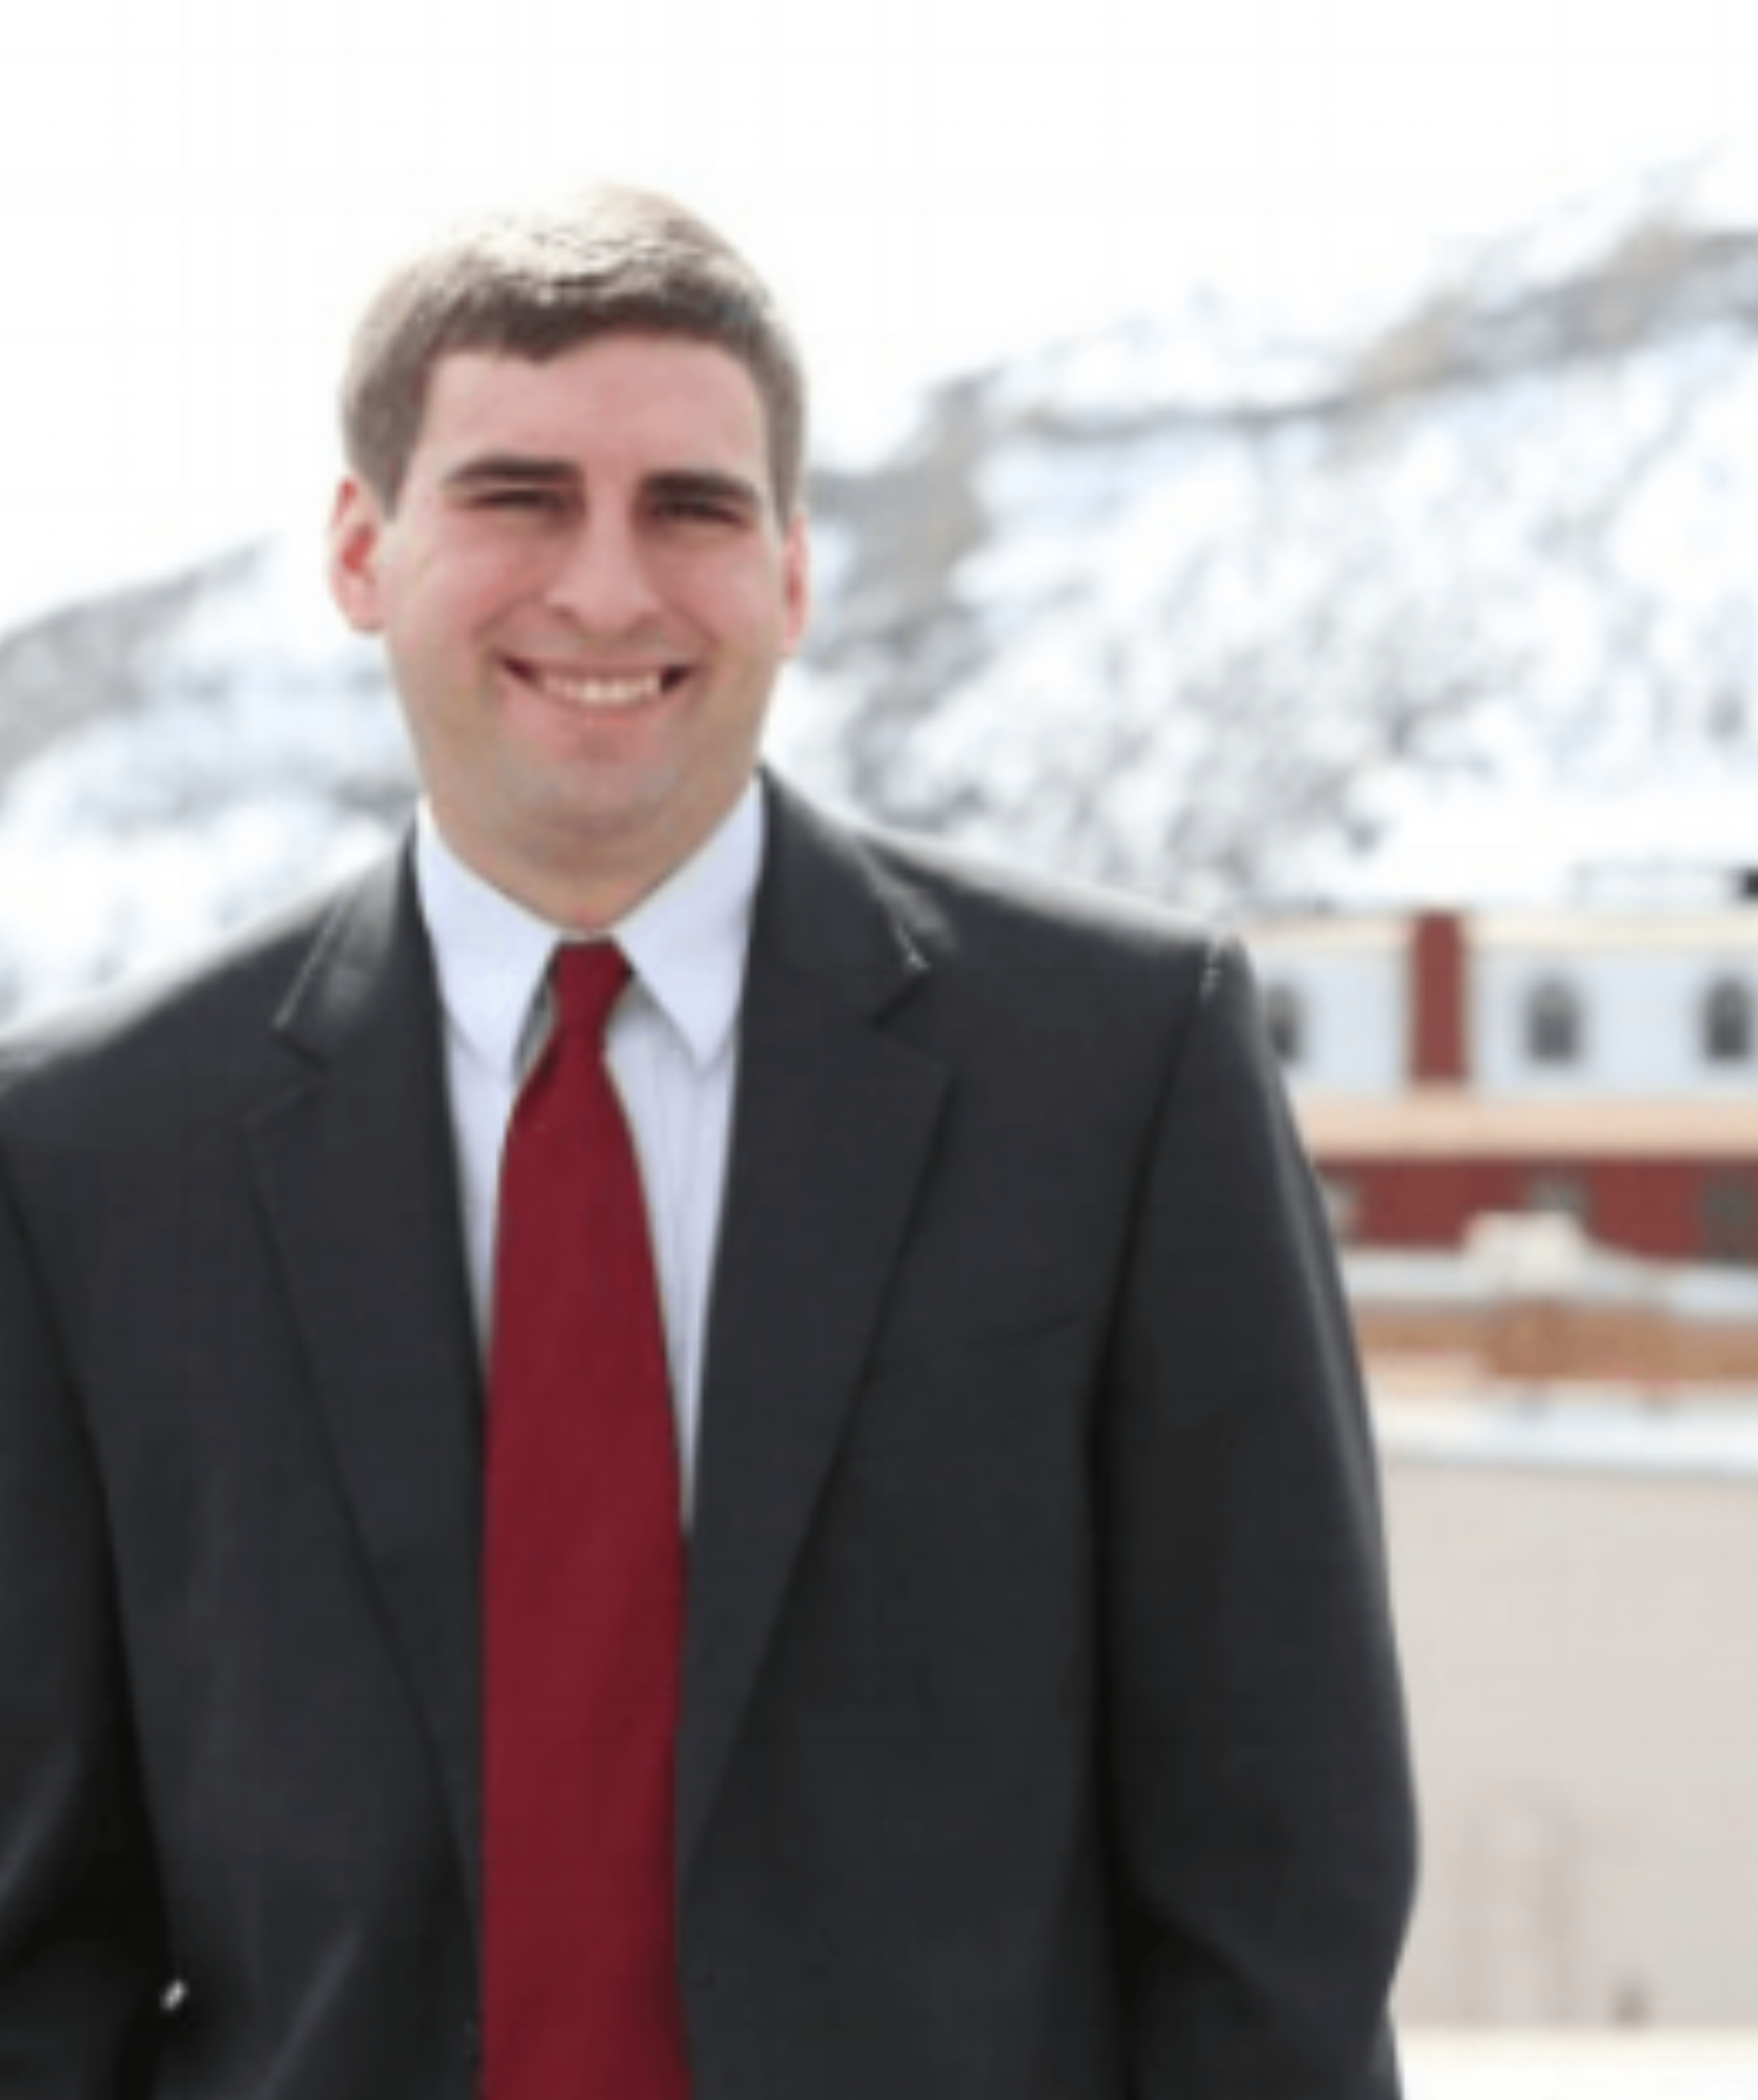 Hugh Boles - Law Office of Cox & Boles, LLC1099 Main Ave., Ste. 303,Durango, CO 81301970-259-0662boles@cblawdurango.comcblawdurango.comHugh is a Durango native, who has been practicing family law in Southwest Colorado since 2010. He strongly believes in the collaborative approach as it provides a solution oriented process that assists families in obtaining the skills and agreements to resolve issues on their own.